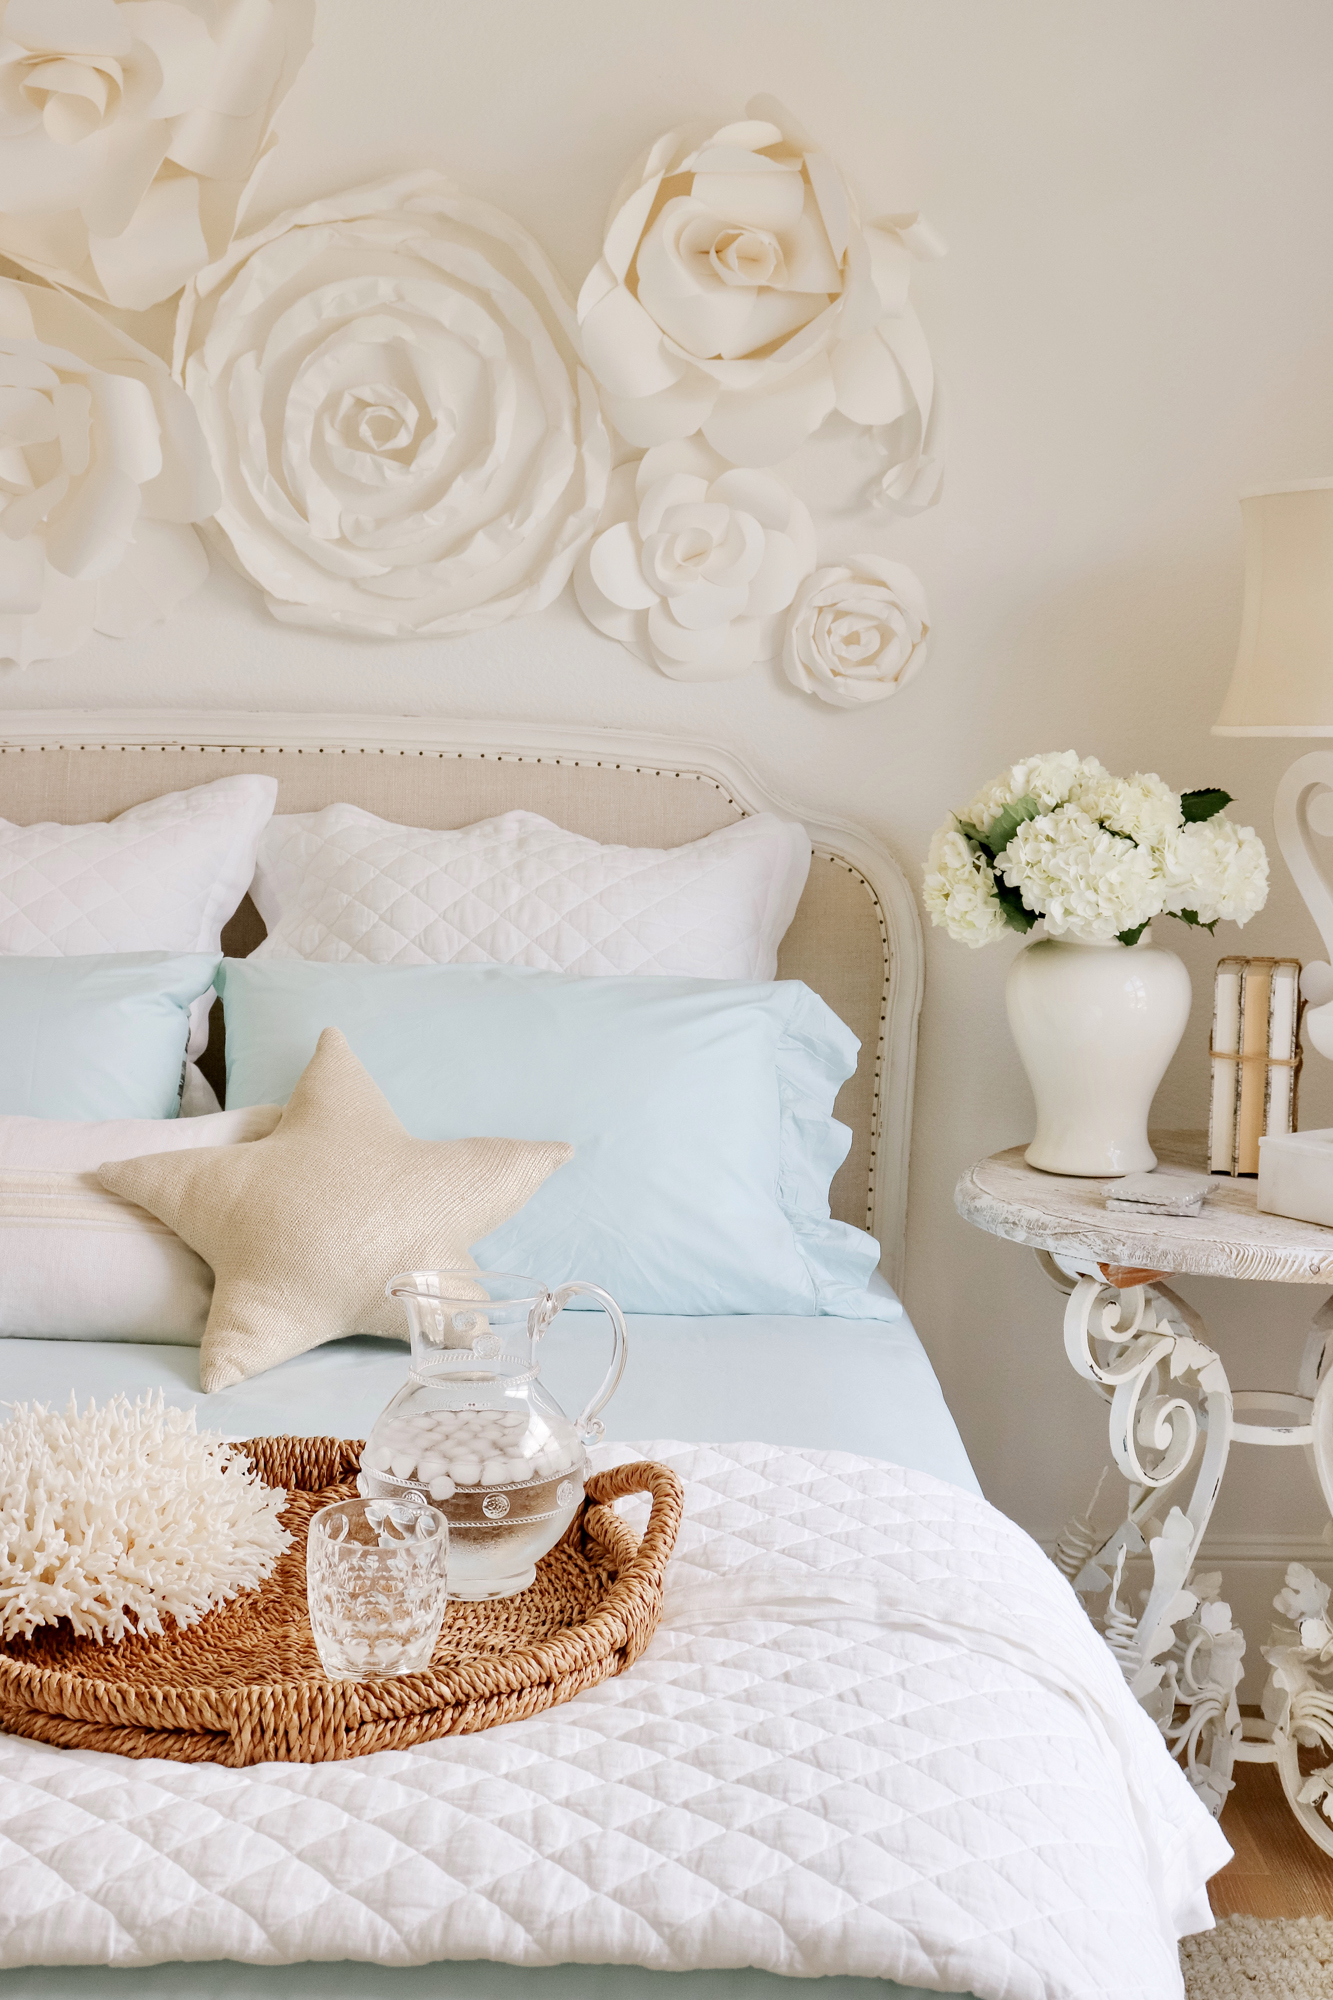 Summer Coastal Home Decor on a Budget - Beachy & relaxed vibes in a coastal themed bedroom. Affordable home decor options in the blue tones.